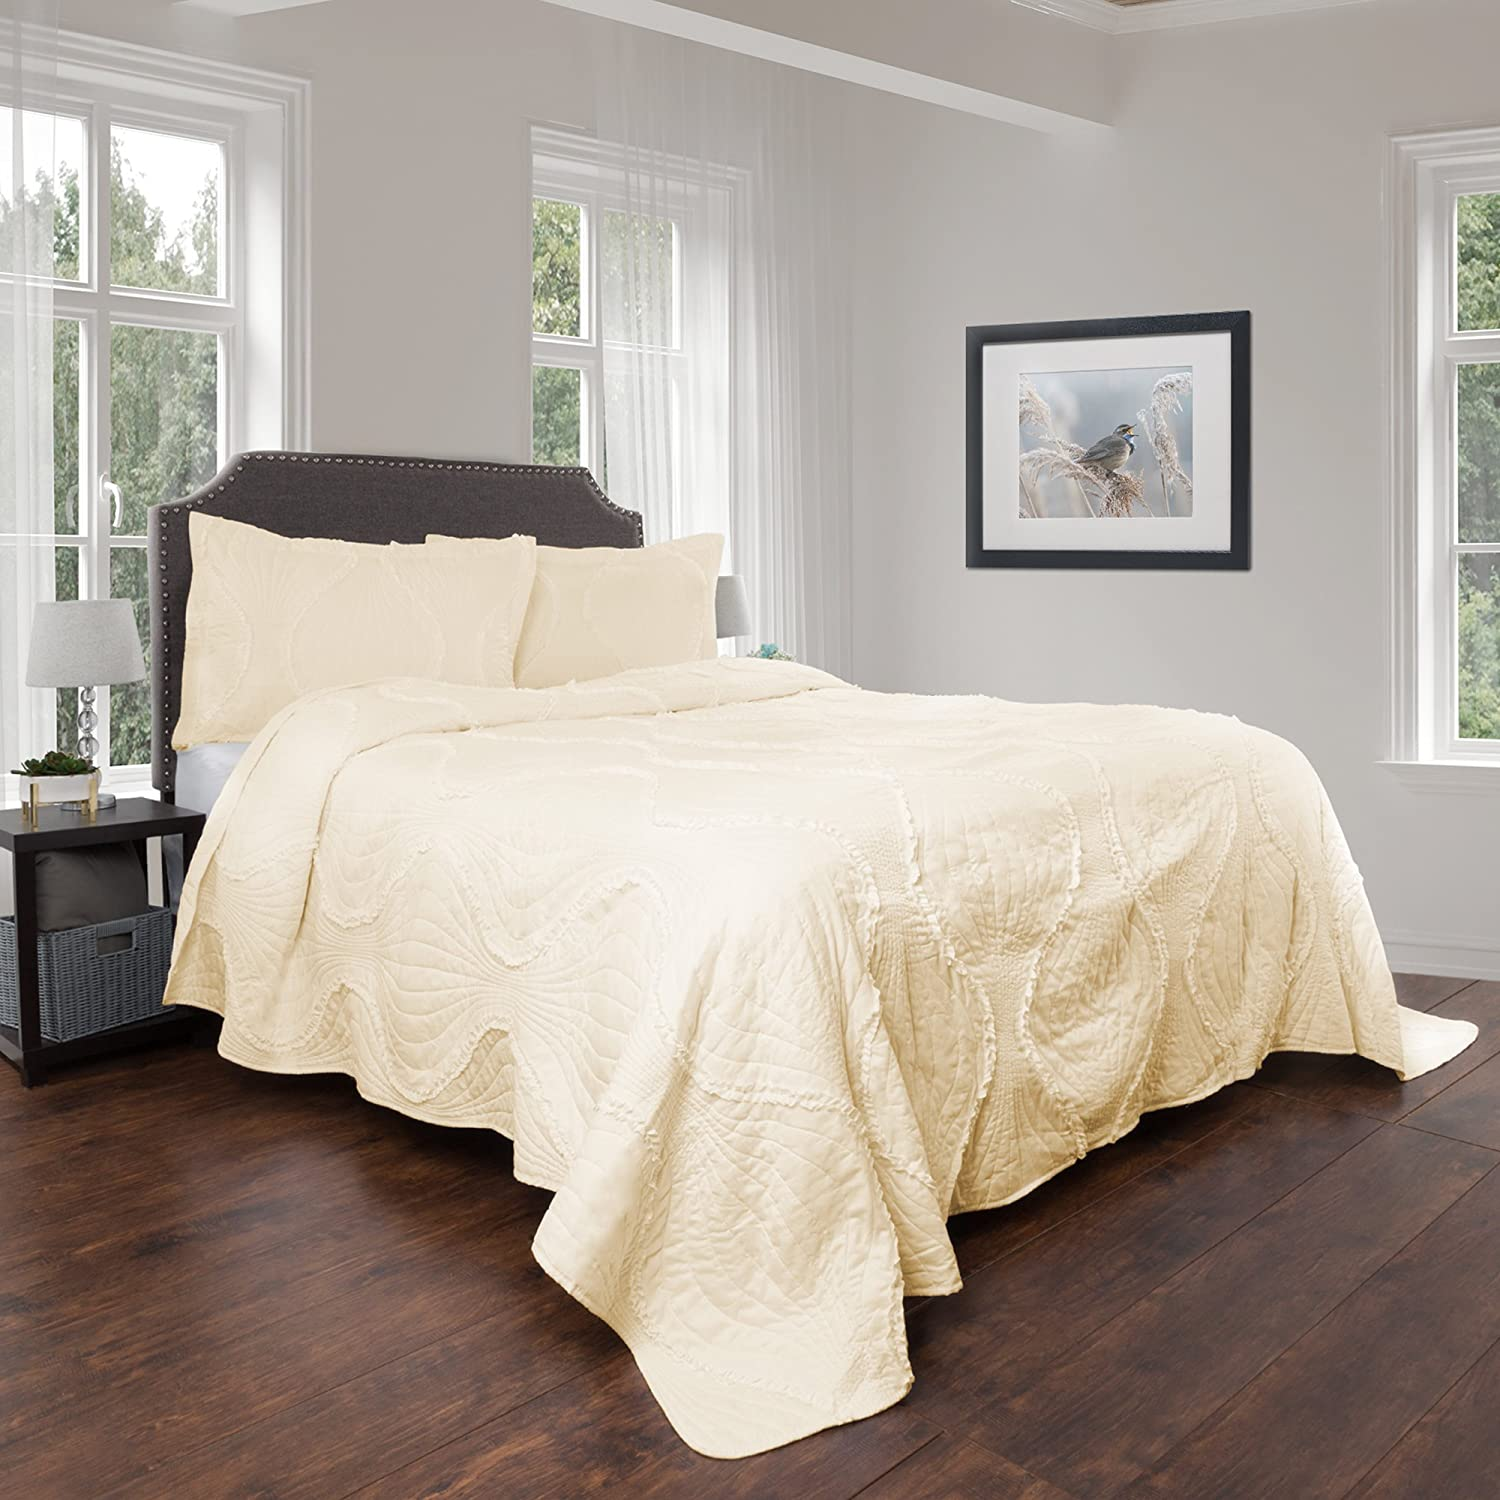 Bedford Home Quilt and Sham Set- Hypoallergenic 3 Piece Oversized King Quilt Bed Set with Curved Ruffle Design- Charlize Series By (Ivory)